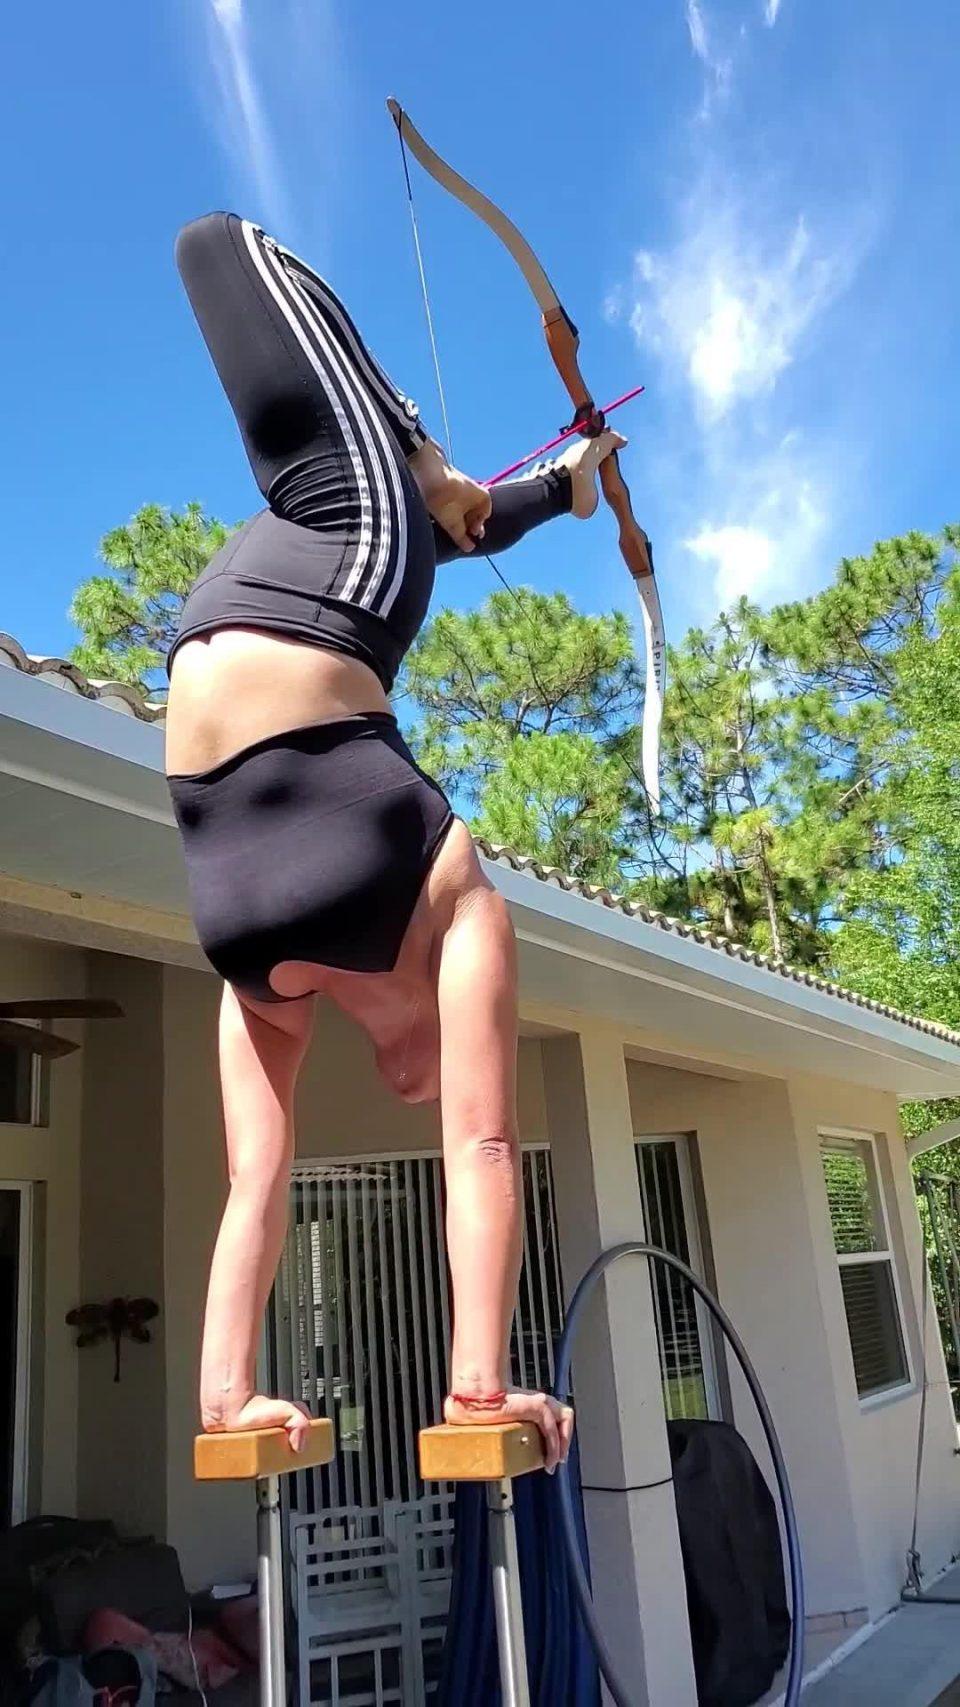 Girl in Handstand Position Fires Arrow at Target Using Toes